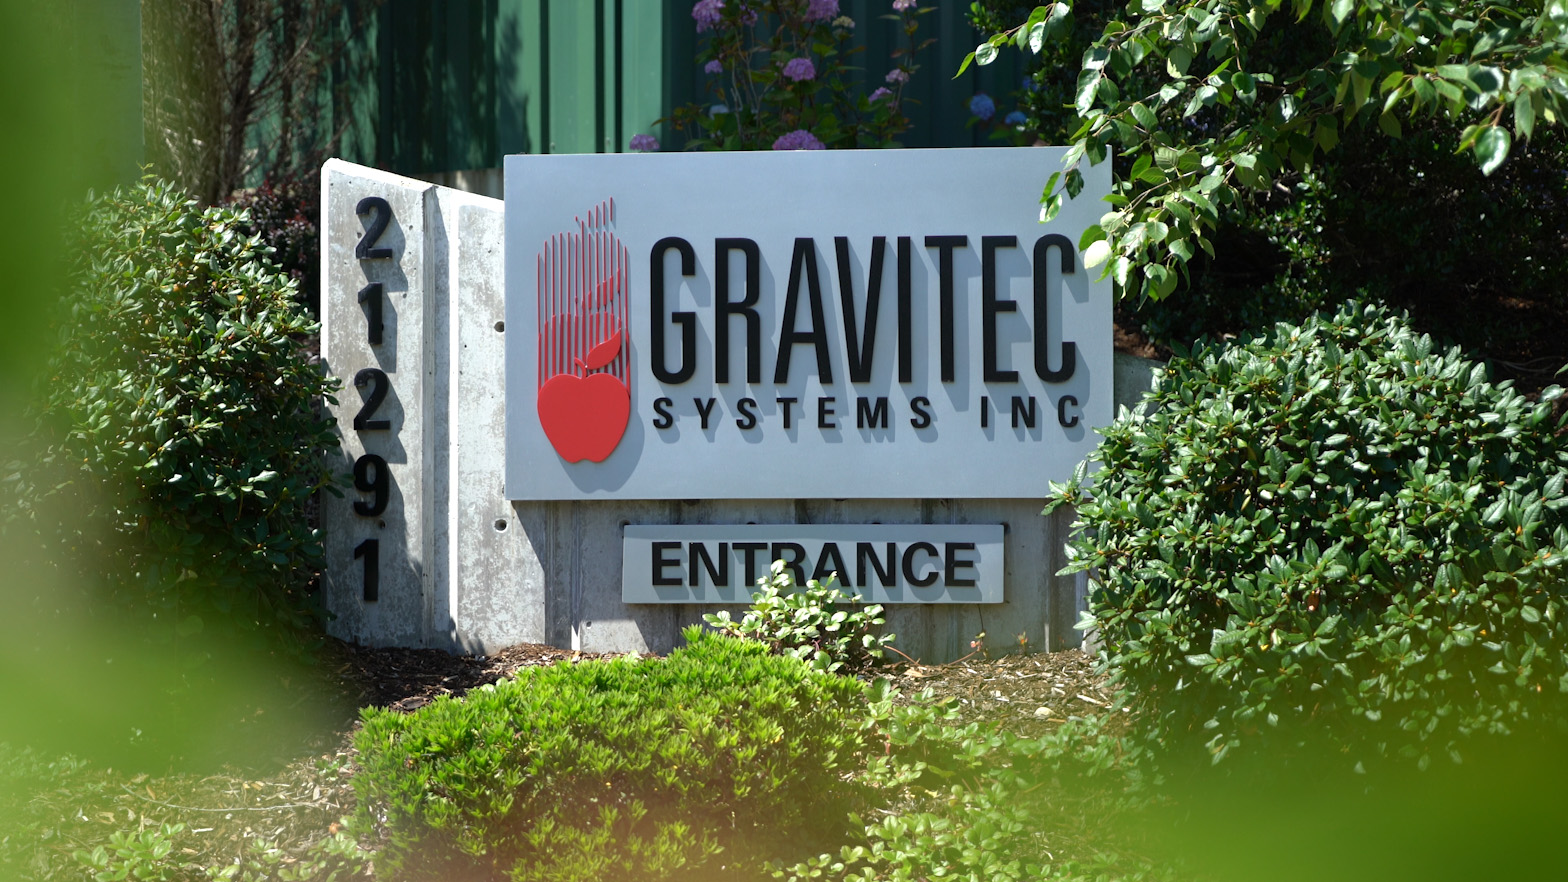 Gravitec entrance sign in front of the building.